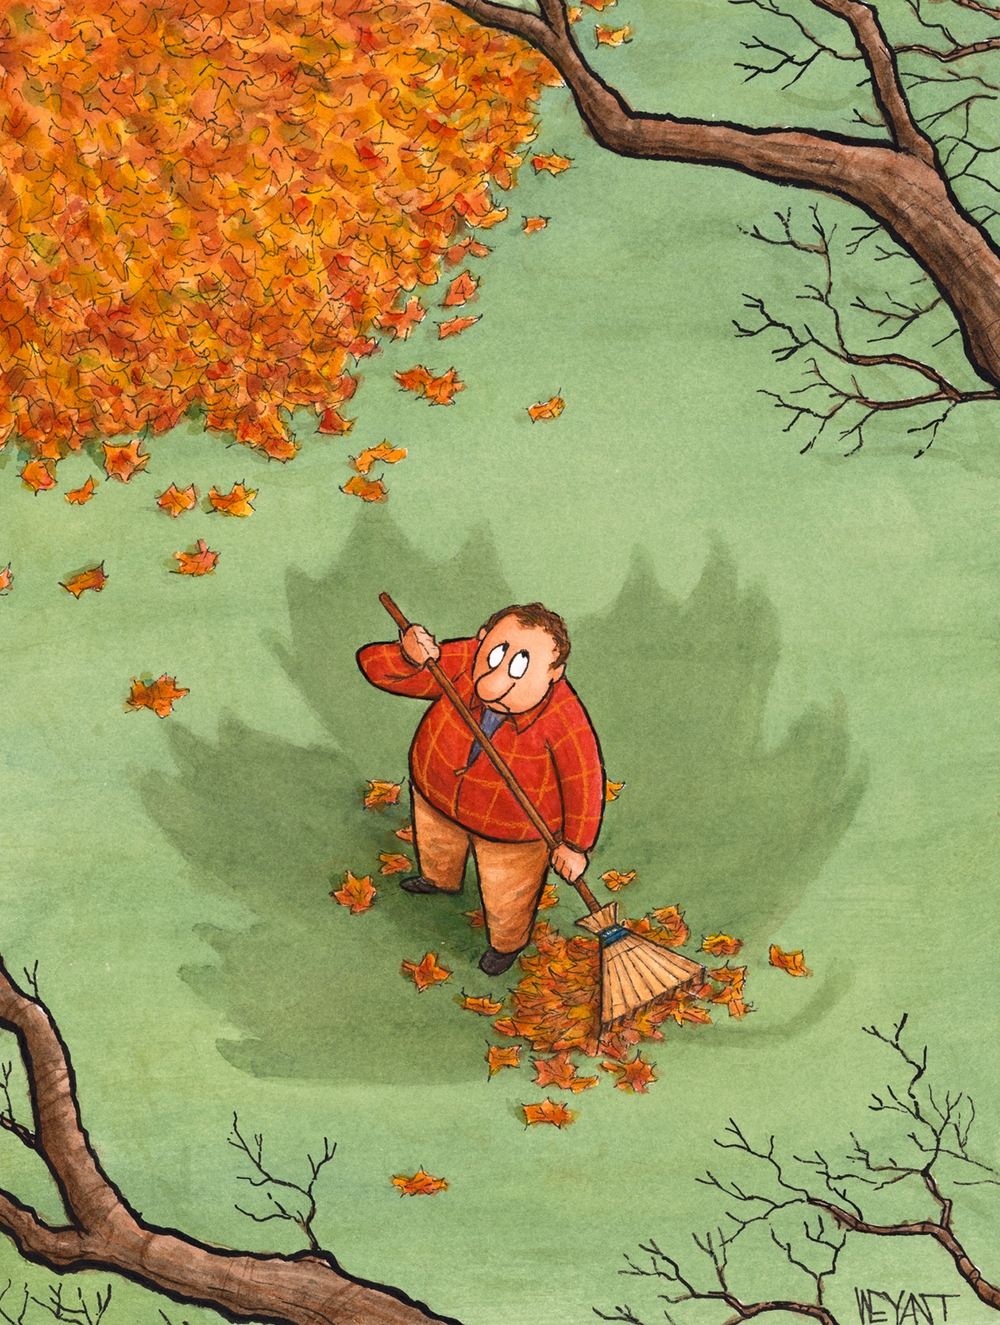 New Yorker Cover-The Last Leaf.jpg